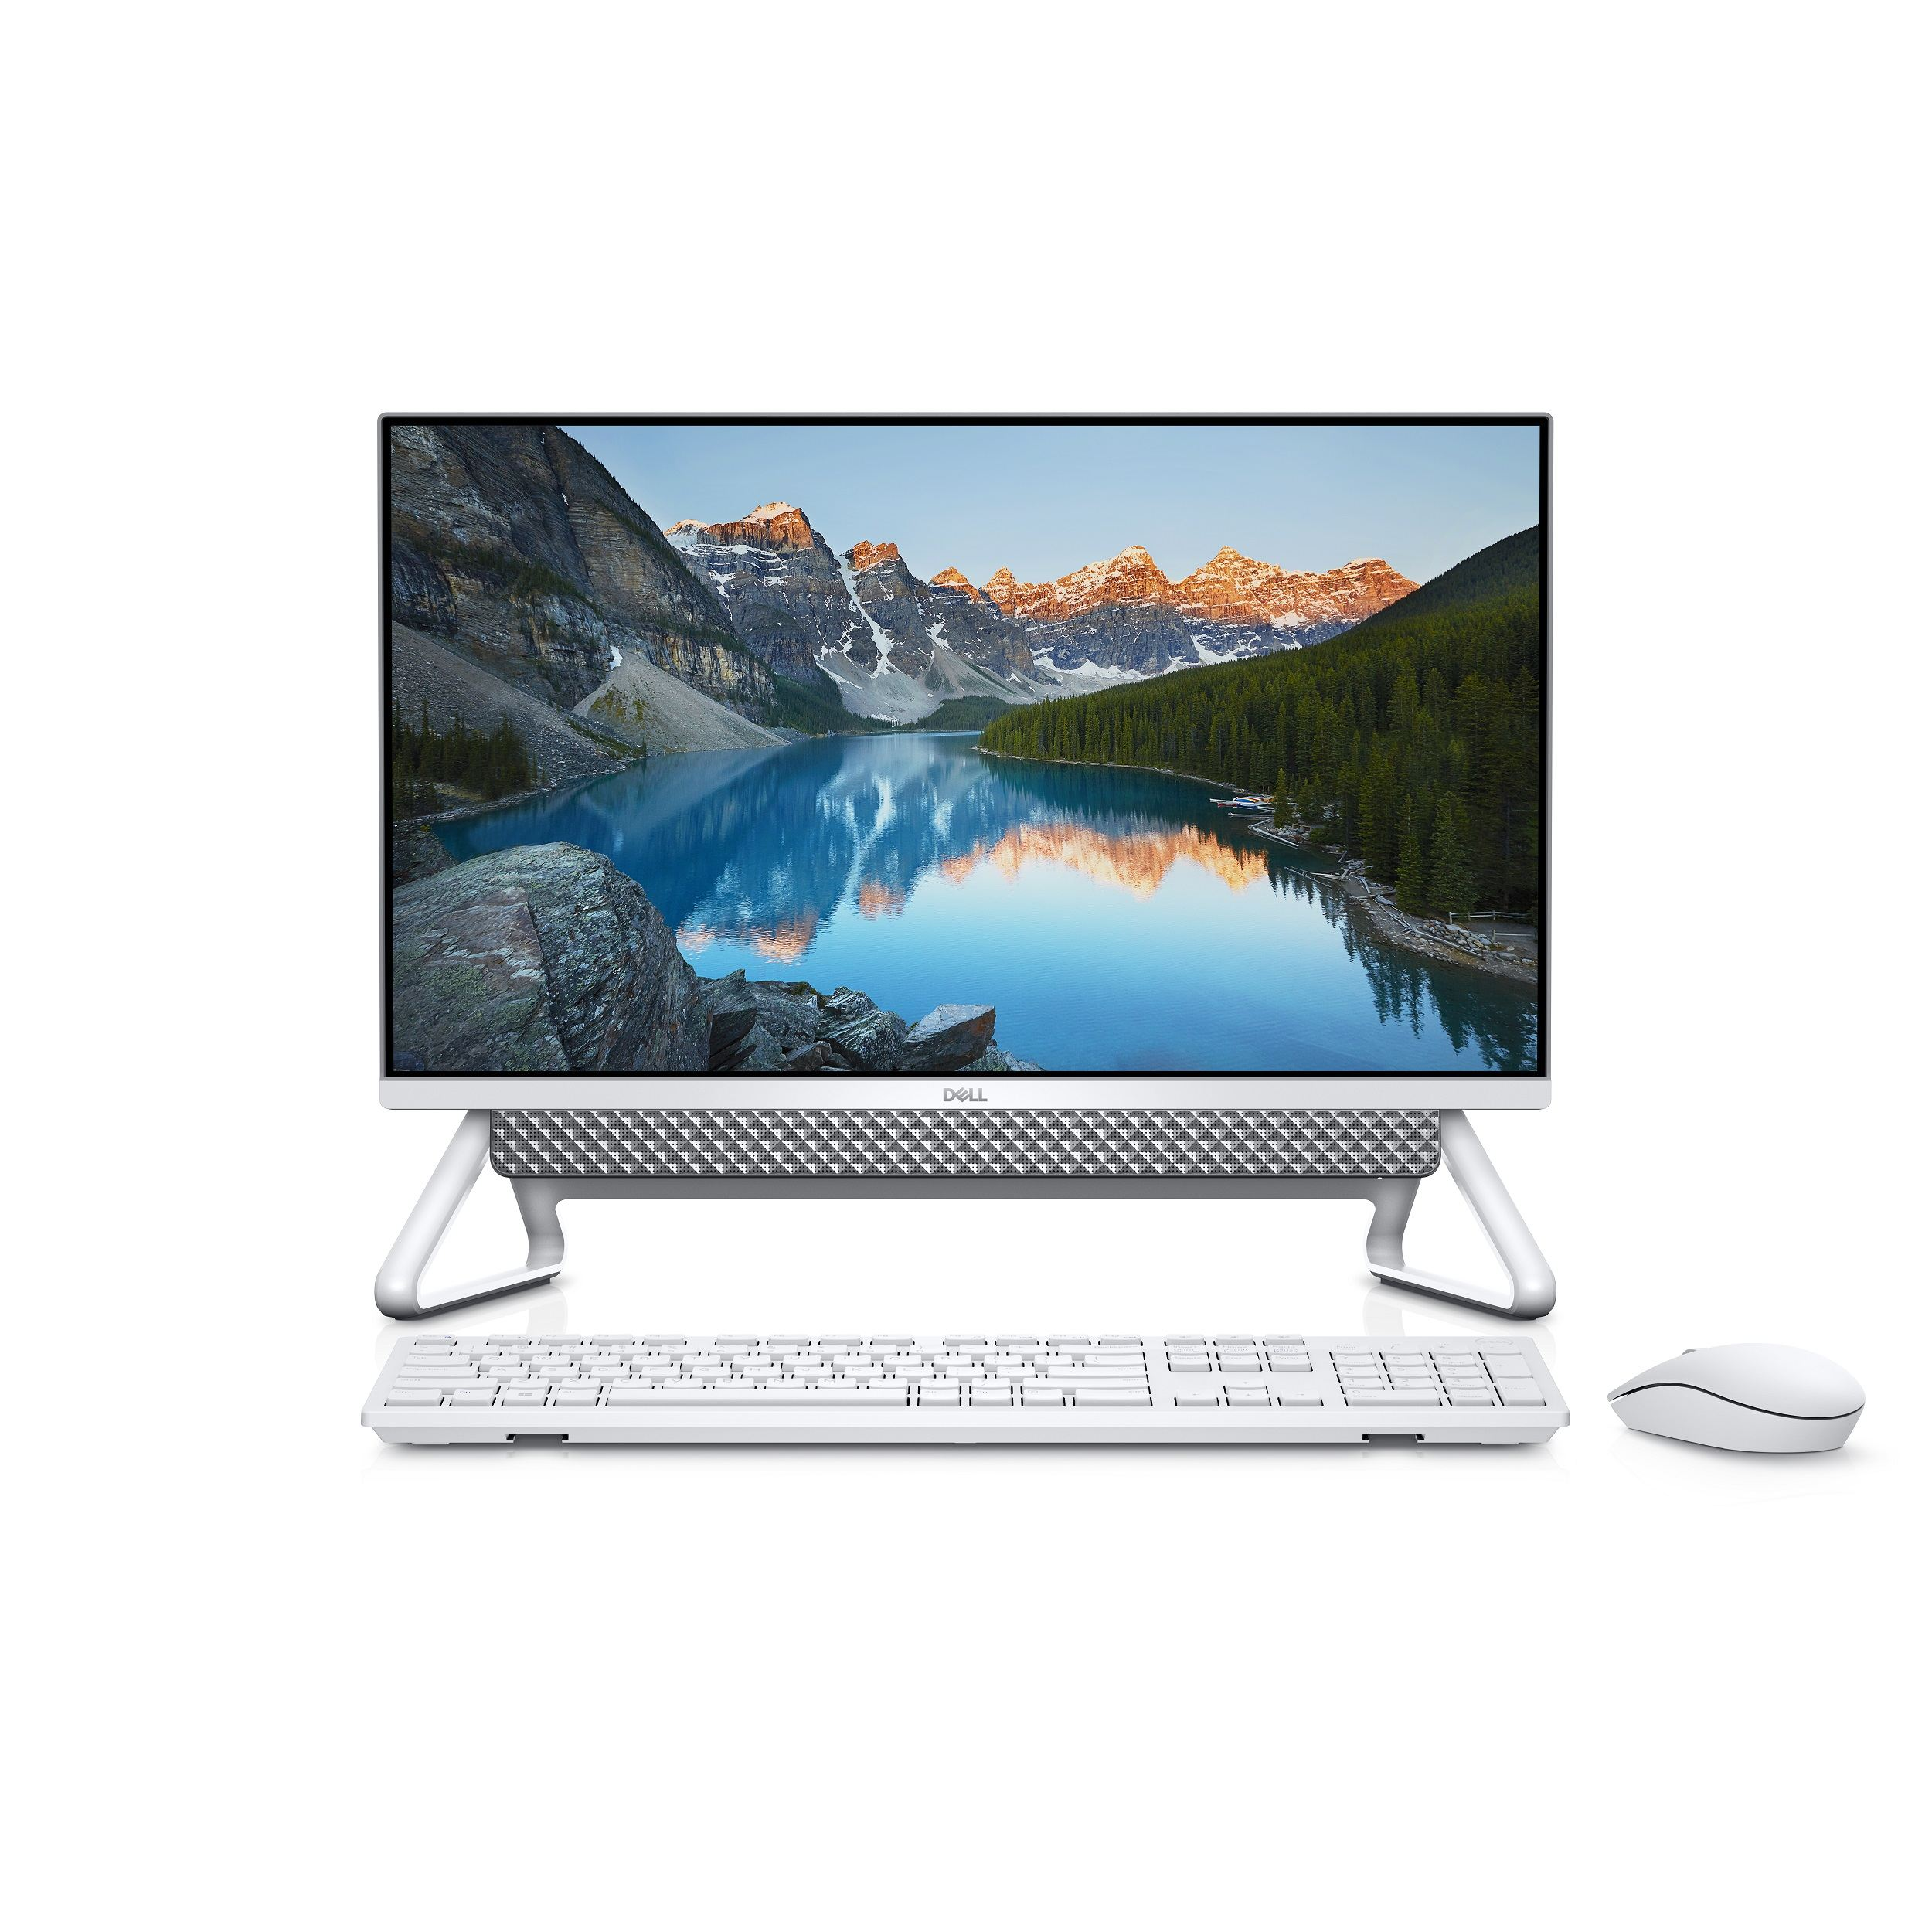 "DELL 5490-S210D256WP81C I5-10210U 8GB 256SSD+1TB 2GB MX110 23.8"" FHD NONTOUCH WIN10 PRO GÜMÜŞ ALL IN ONE PC"